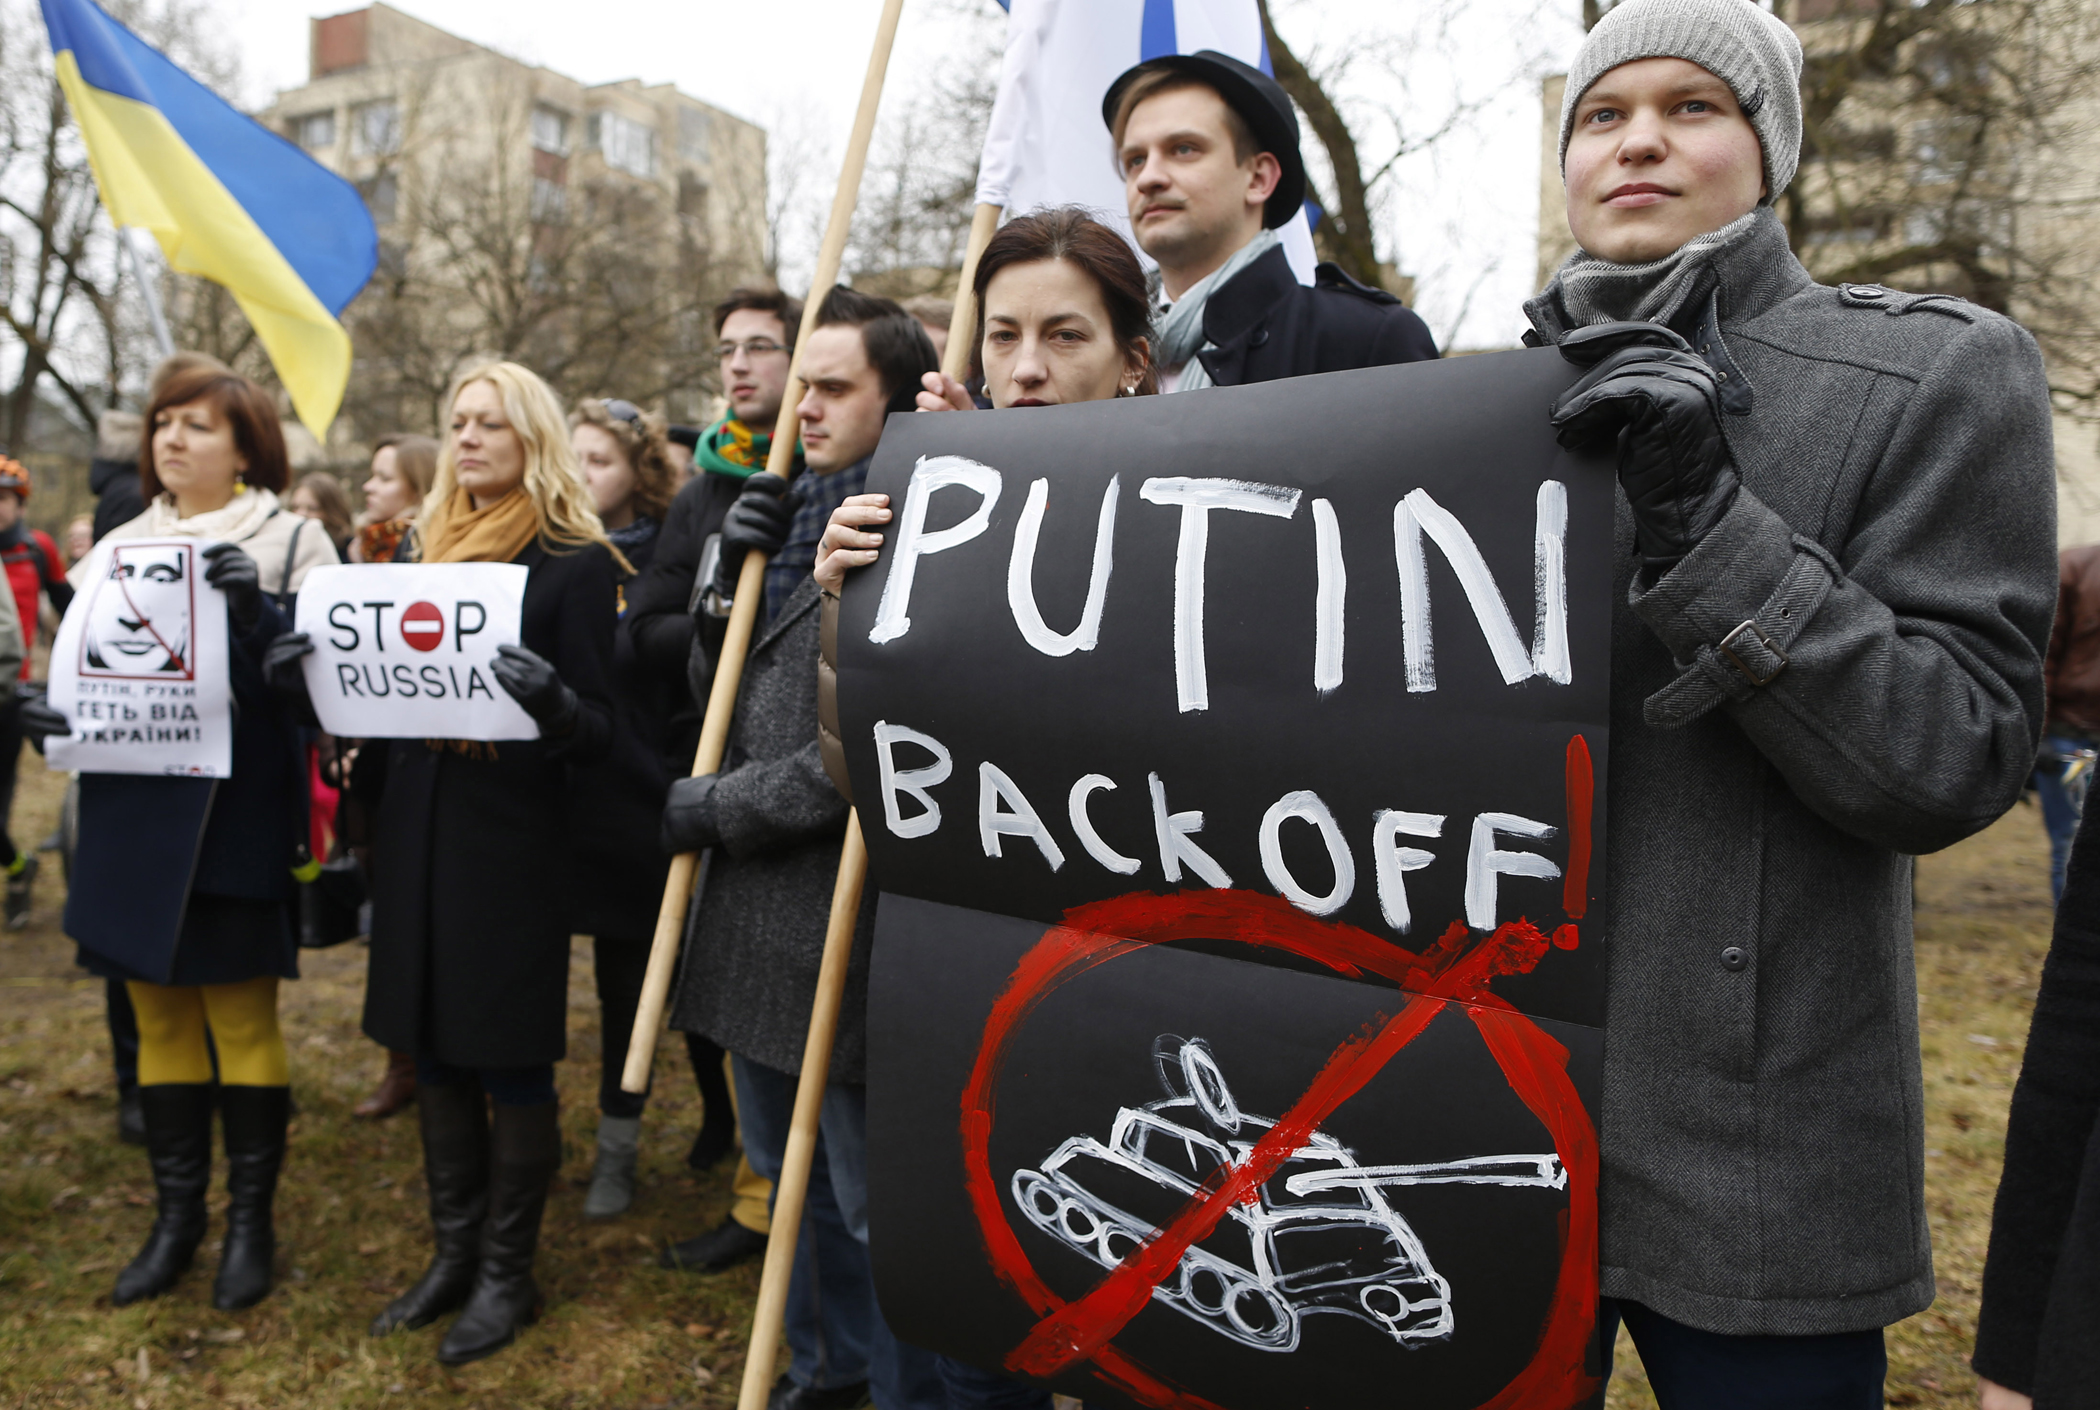 Demonstrators gather outside the Russian Embassy in Vilnius, Lithuania, to protest against Russian intervention in Ukraine, in March 2014.